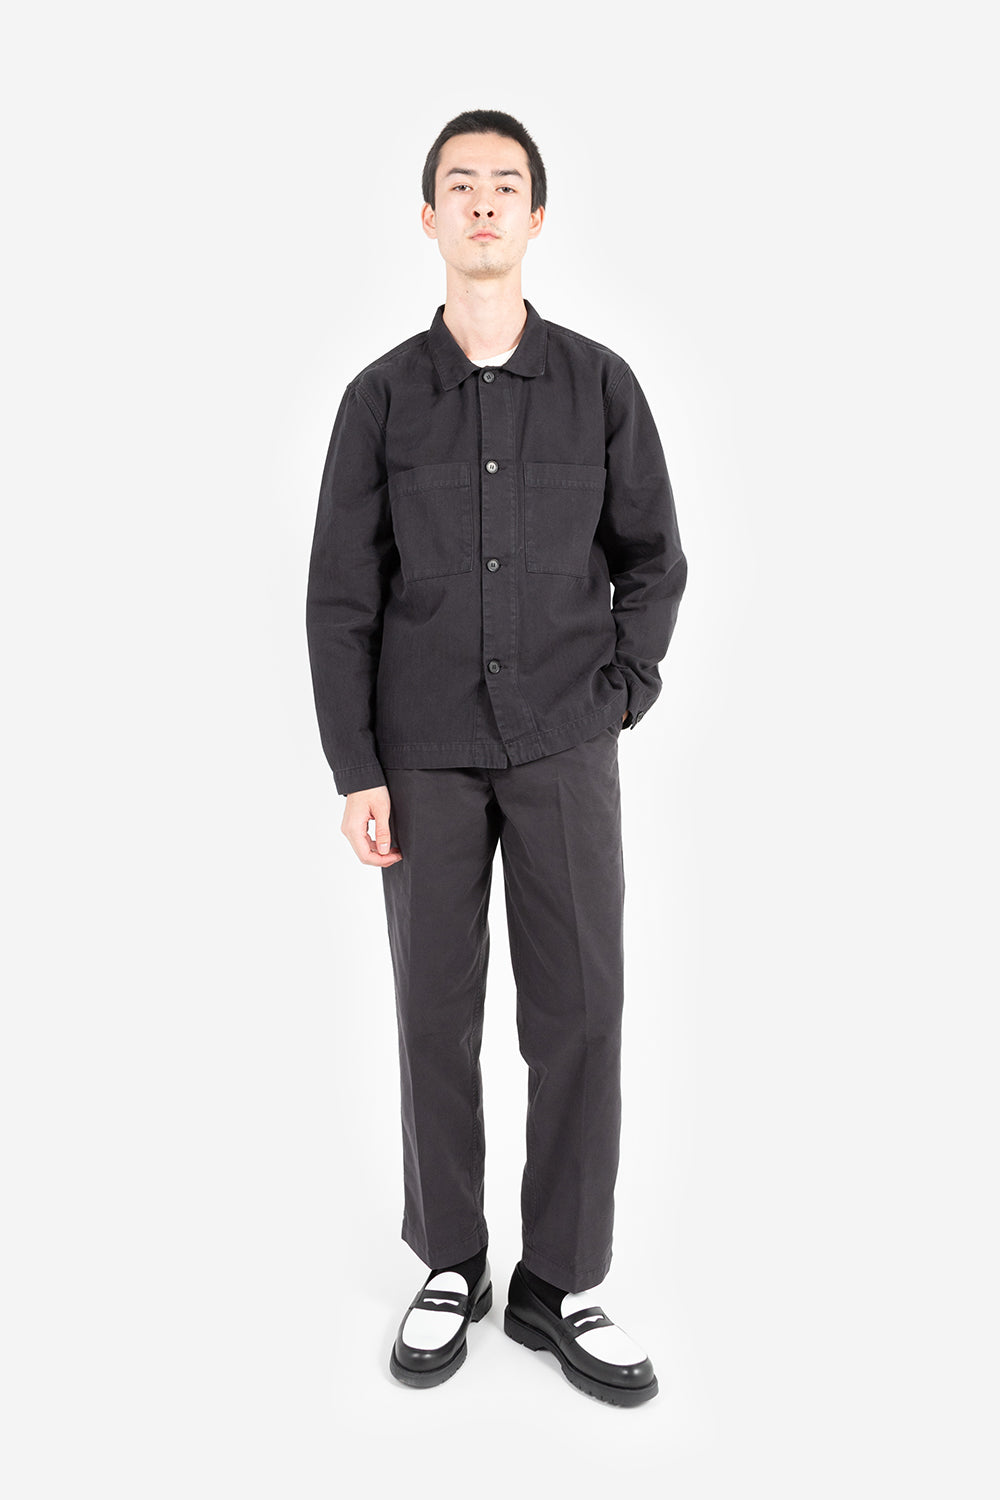 Knickerbocker chore shirt black fabric